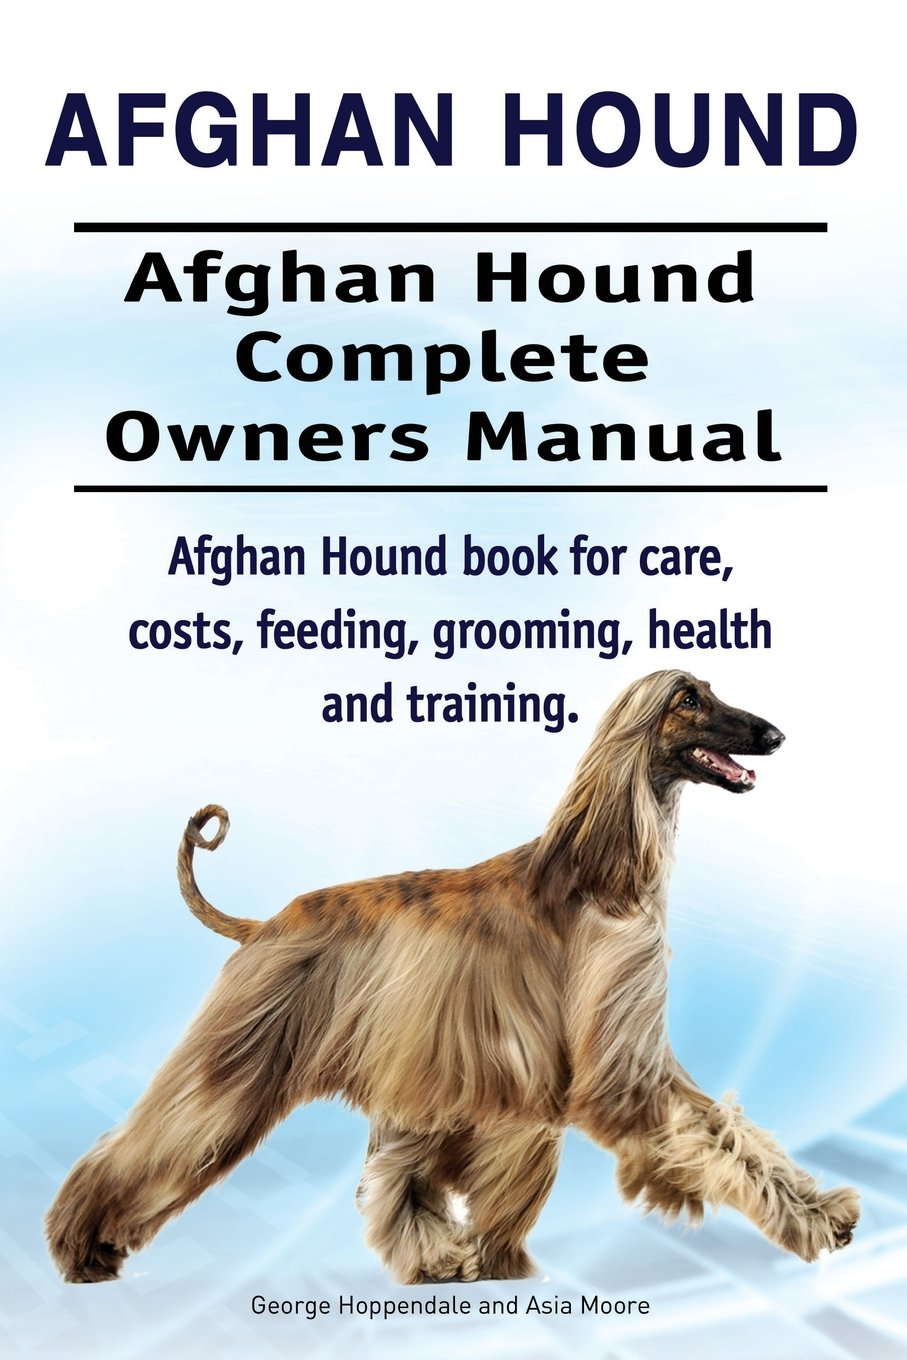 Afghan Hound. Afghan Hound Complete Owners Manual. Afghan Hound book for care, costs, feeding, grooming, health and…